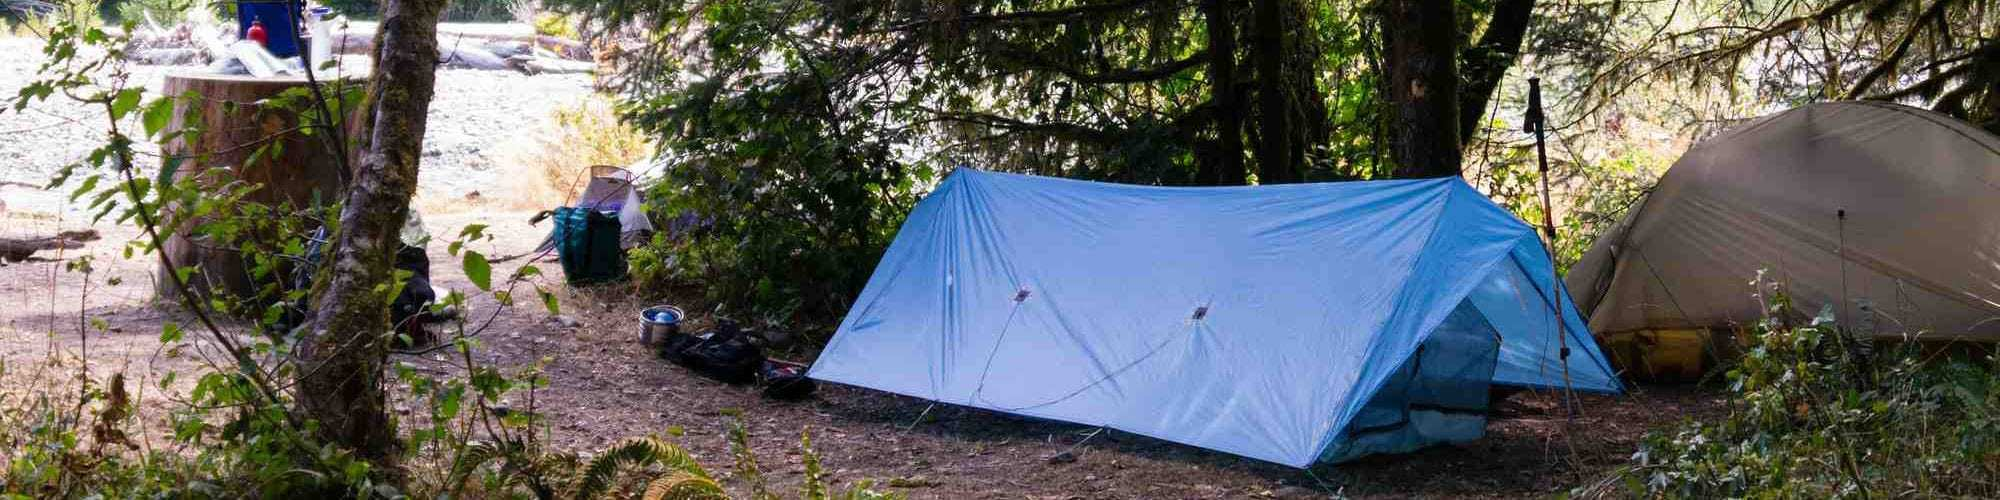 Tarp camping with an a-frame pitch as a tarp shelter configuration